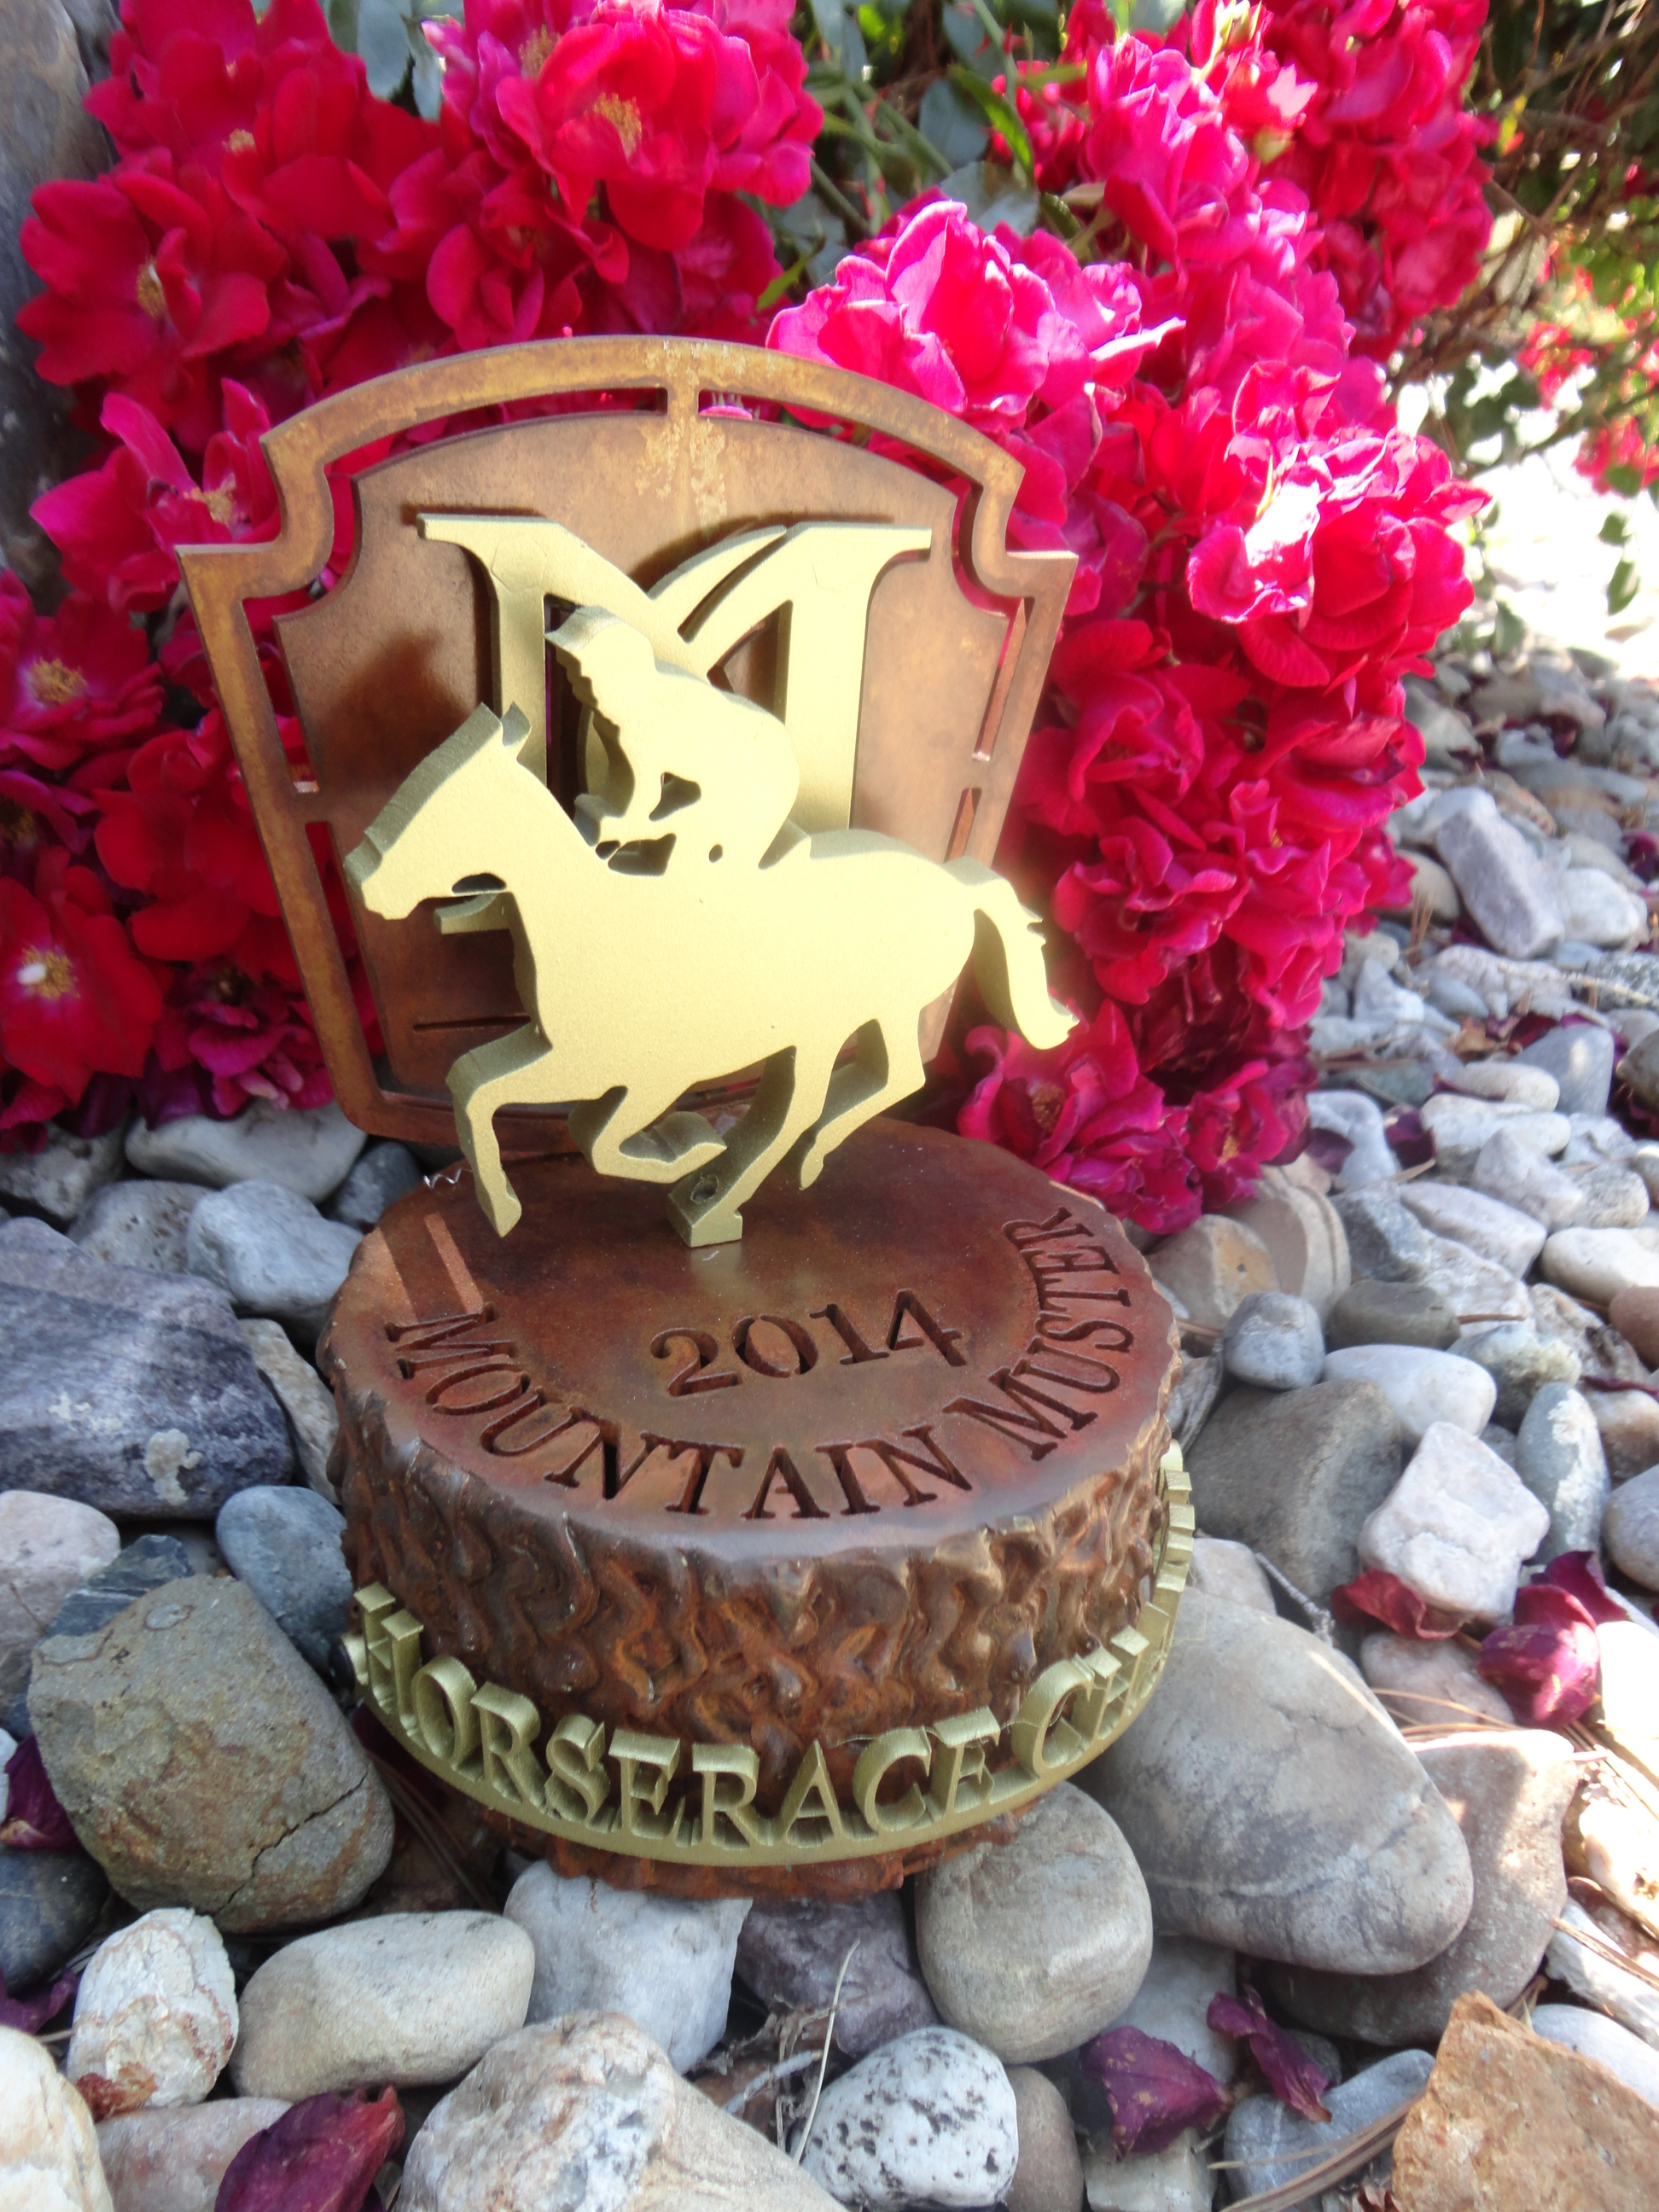 MARTIS CAMP -Golf Horserace Trophy